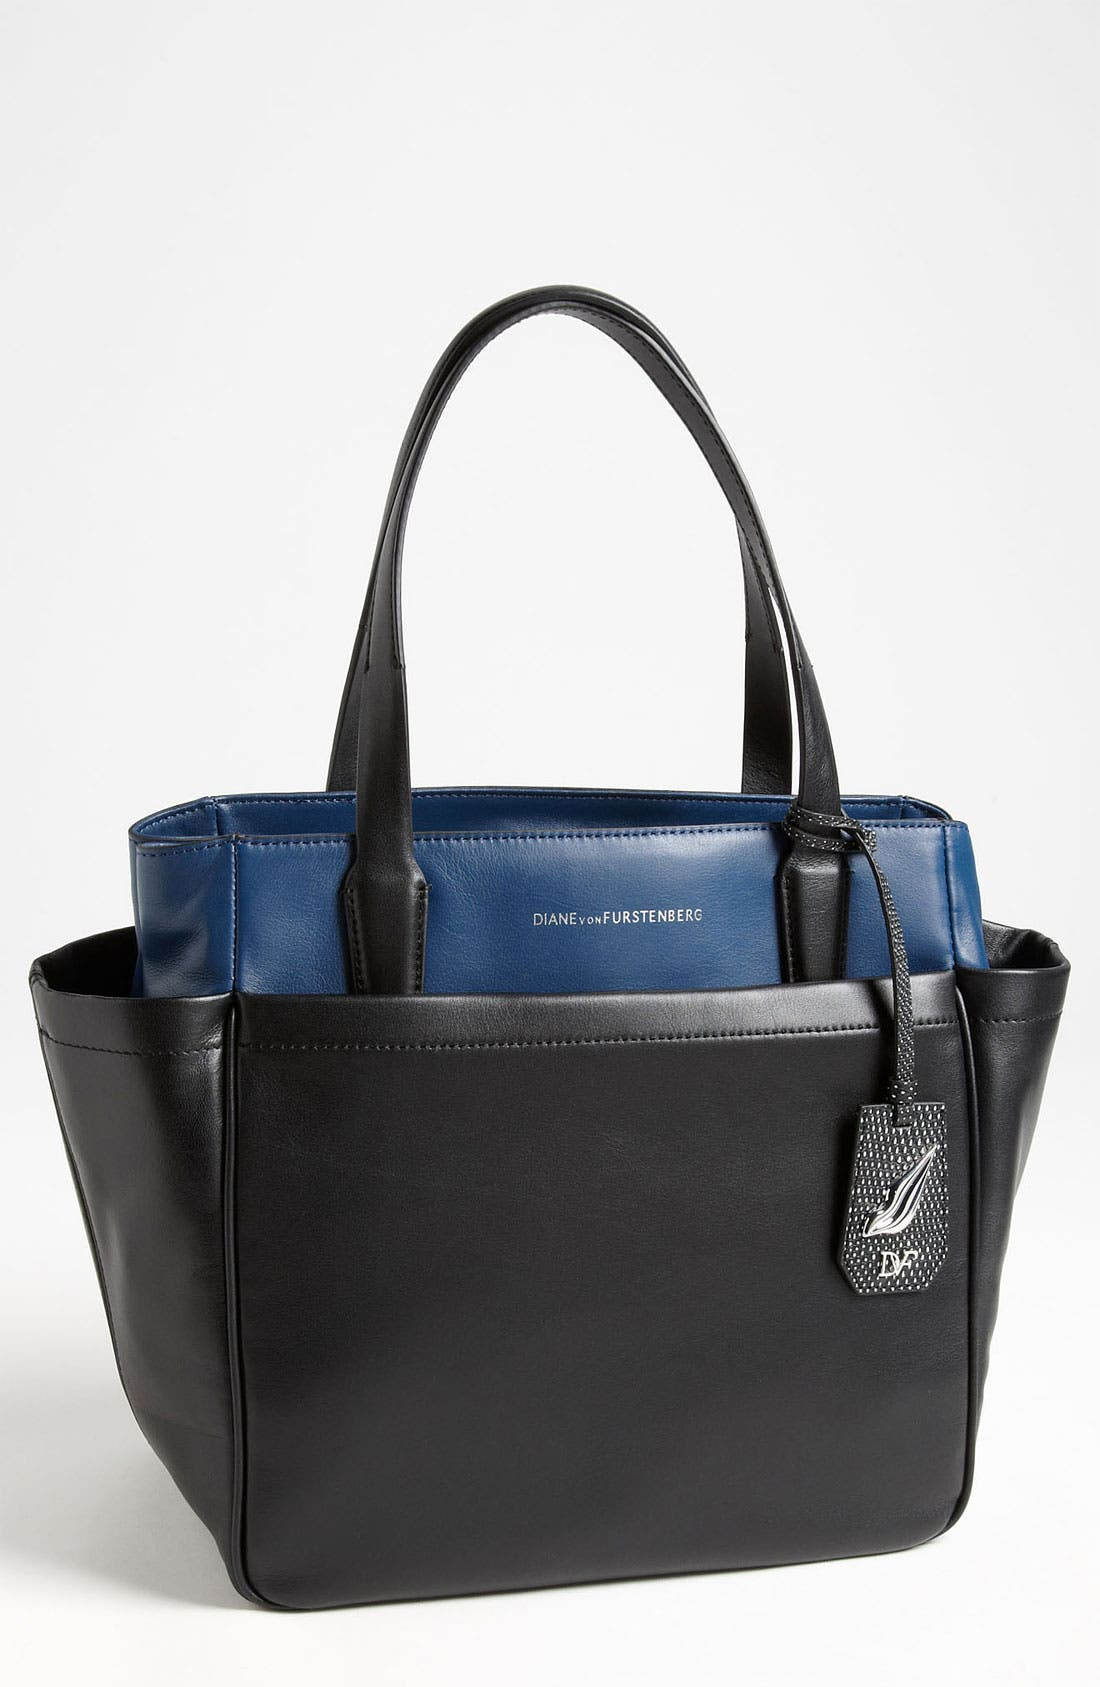 Alternate Image 1 Selected - Diane von Furstenberg 'On the Go' Tote